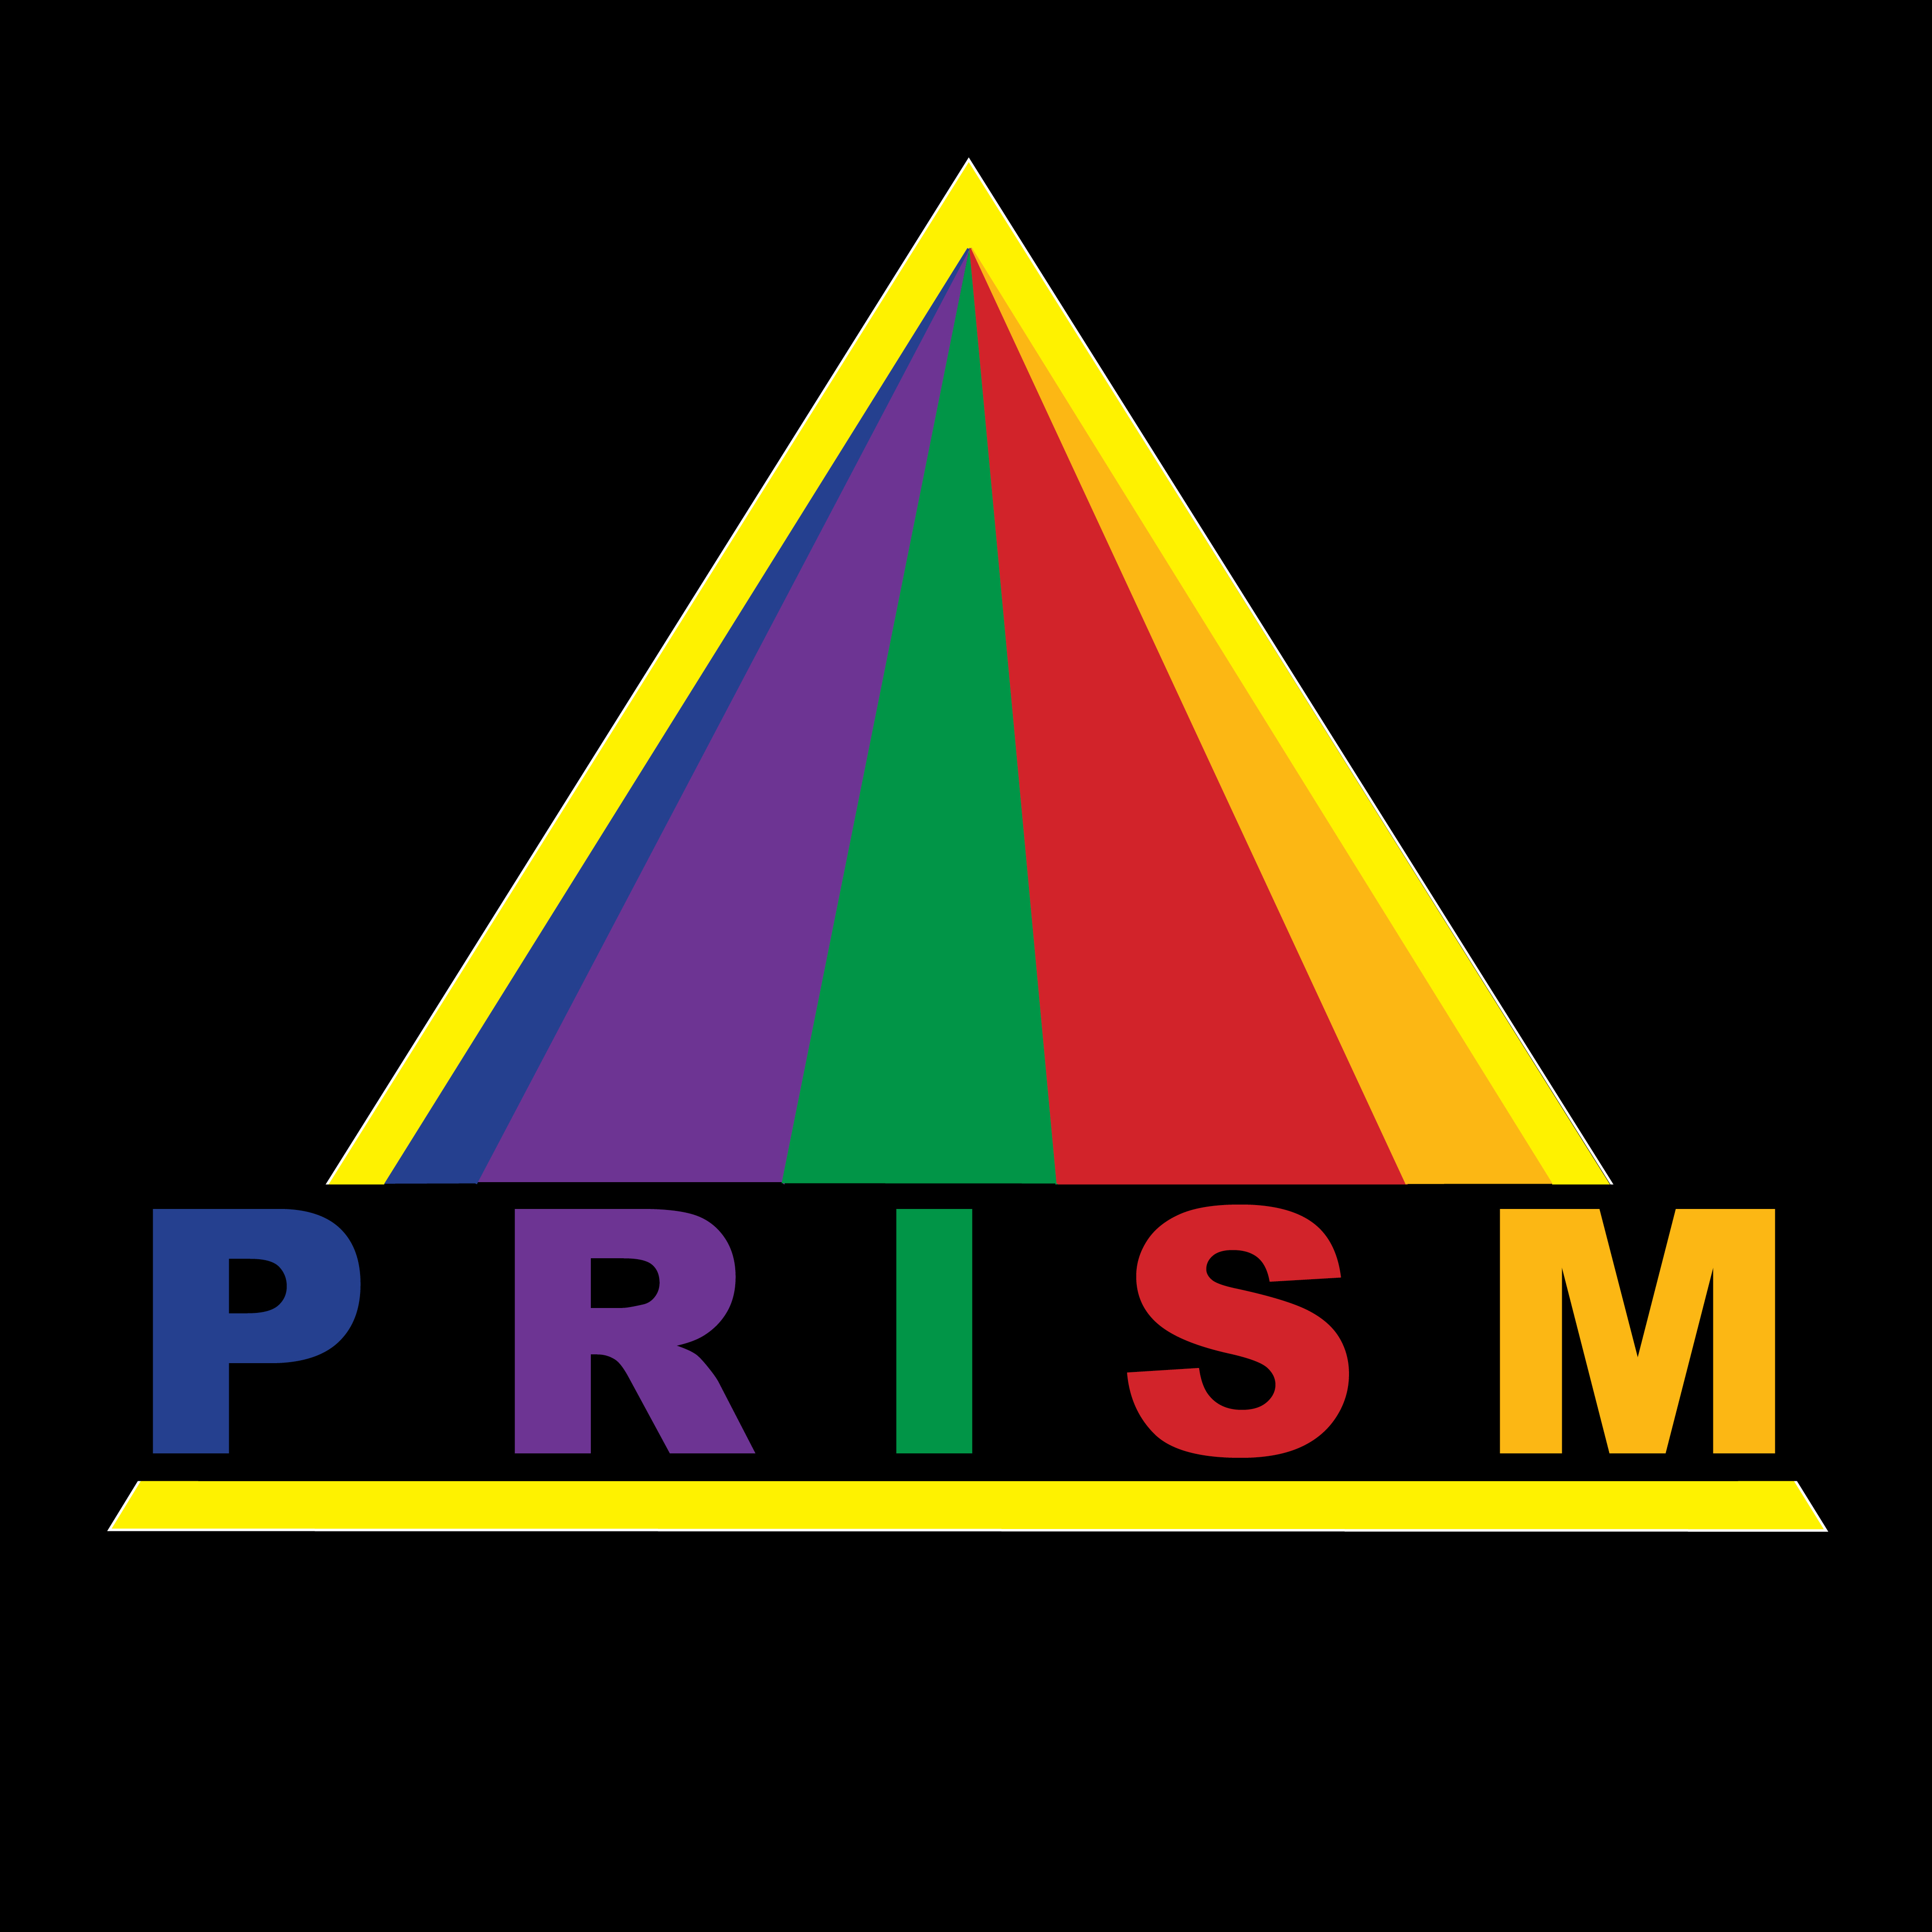 The PRISM Logo: the word PRISM and rays of light in rainbow colors, forming a triangle